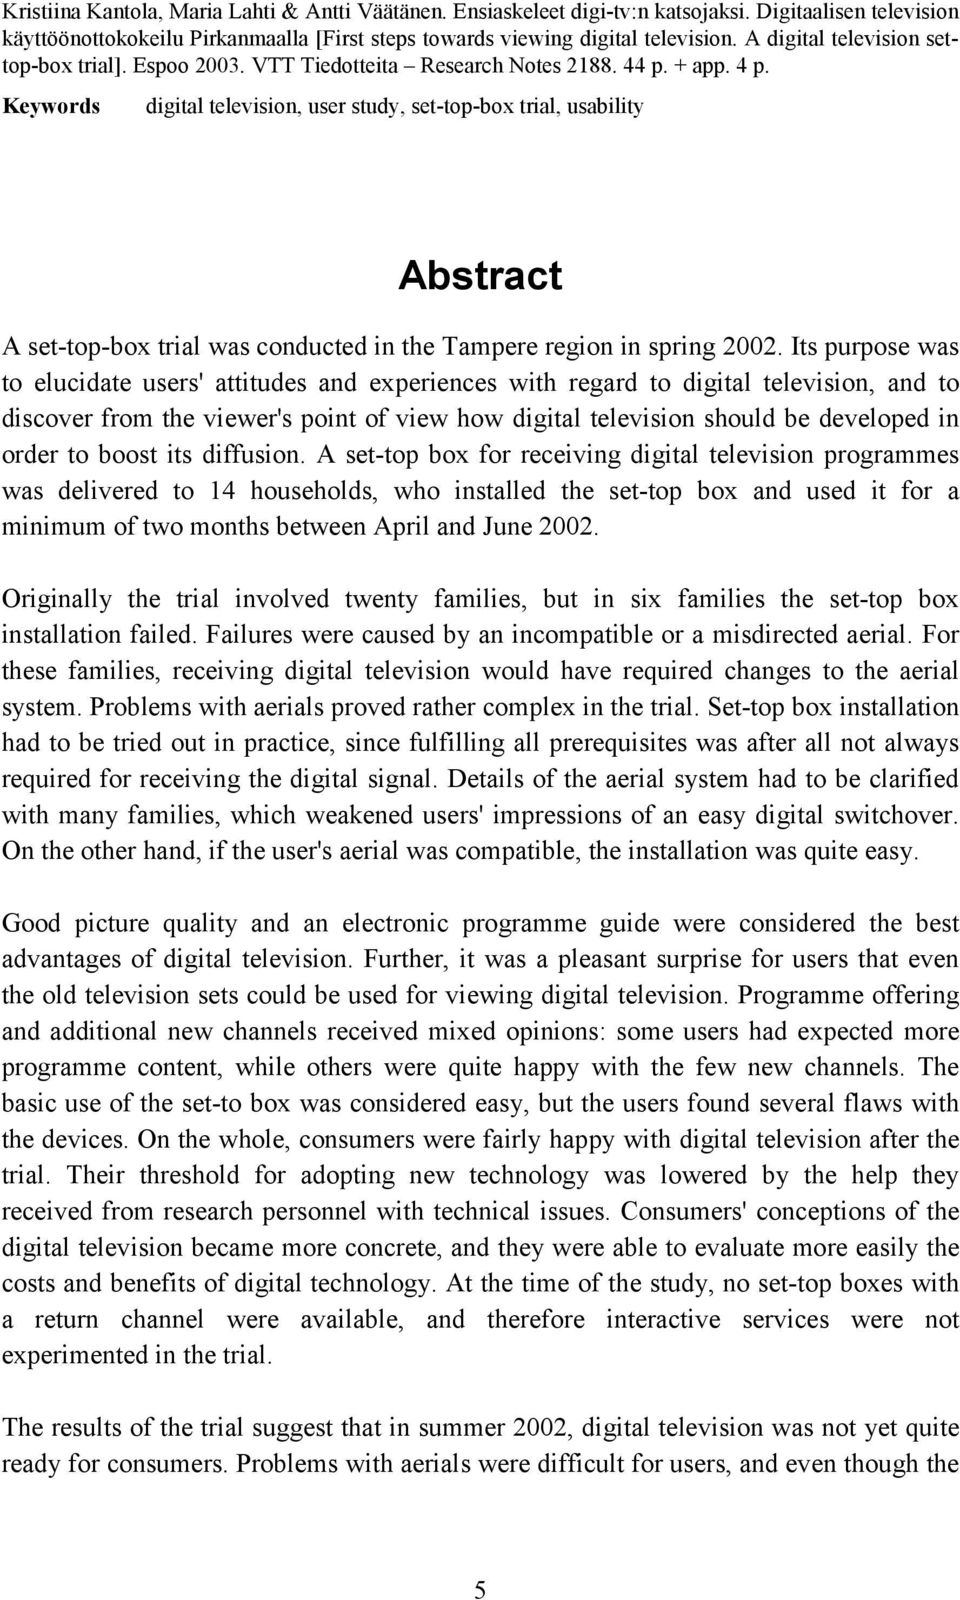 Keywords digital television, user study, set-top-box trial, usability Abstract A set-top-box trial was conducted in the Tampere region in spring 2002.